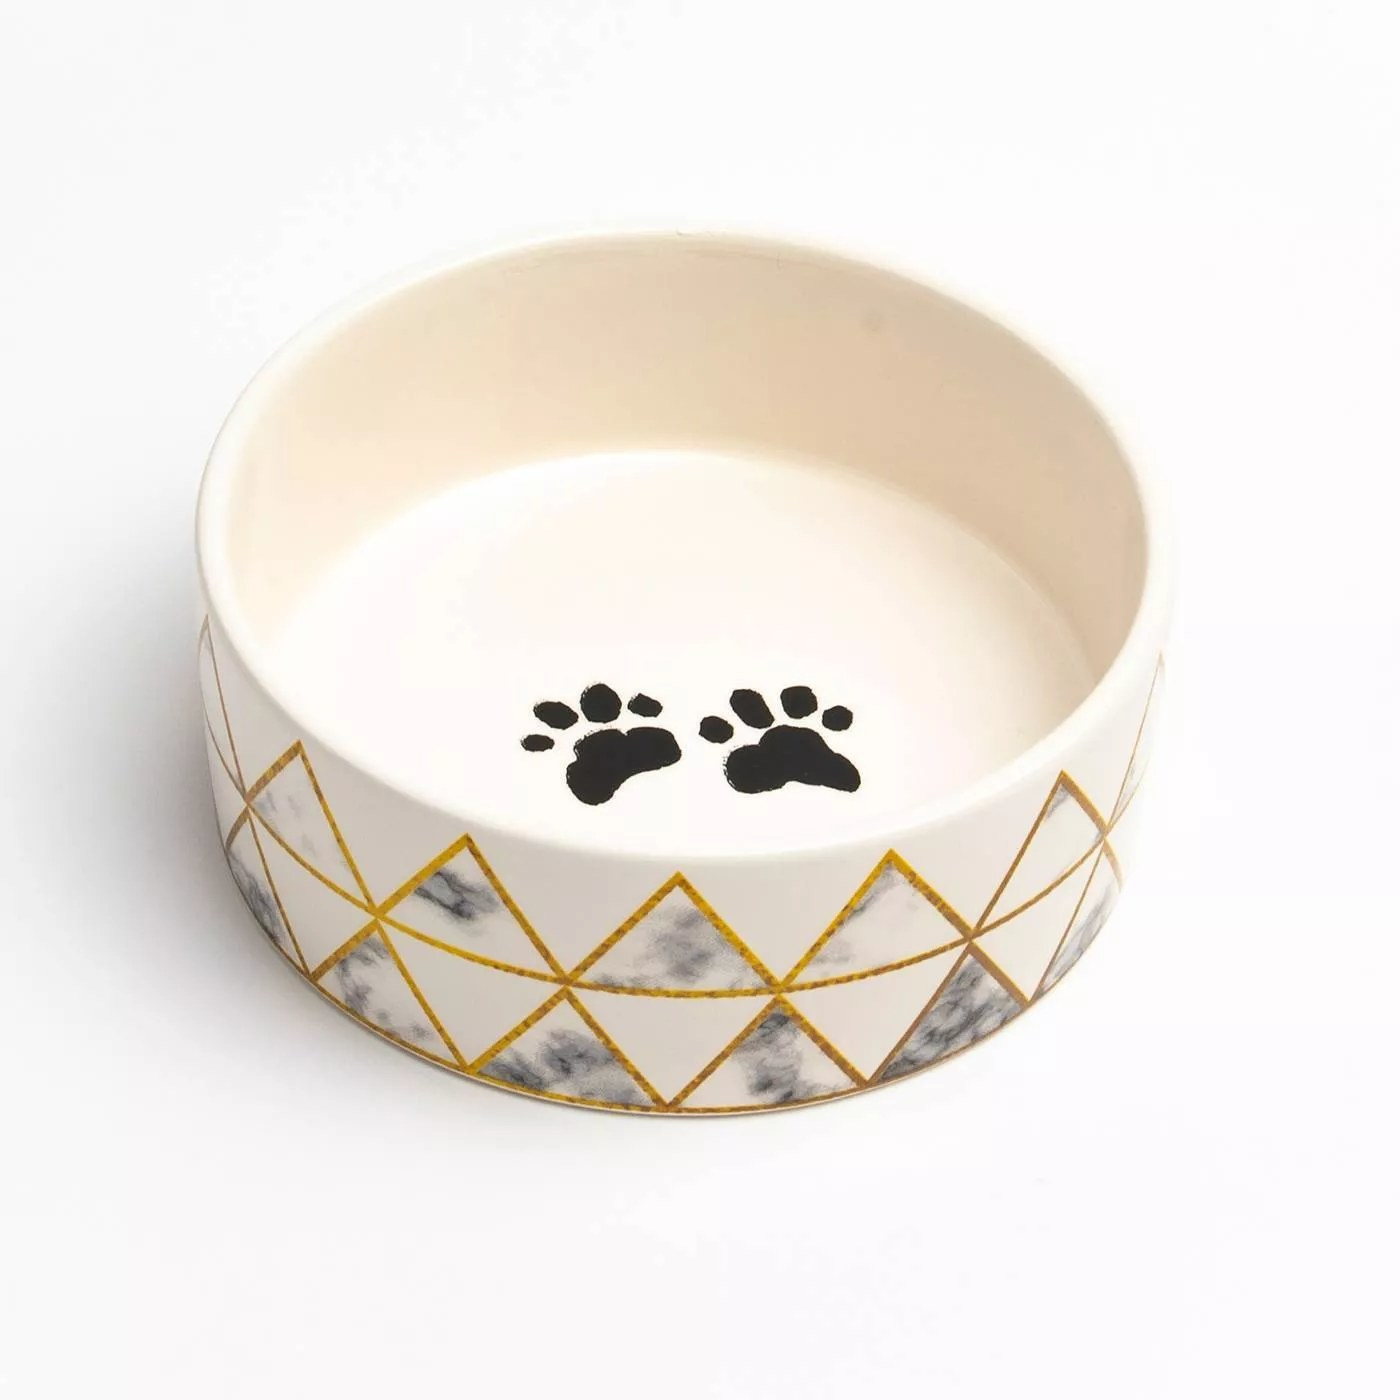 The dog bowl with marble diamond pattern and paw prints on the bowl